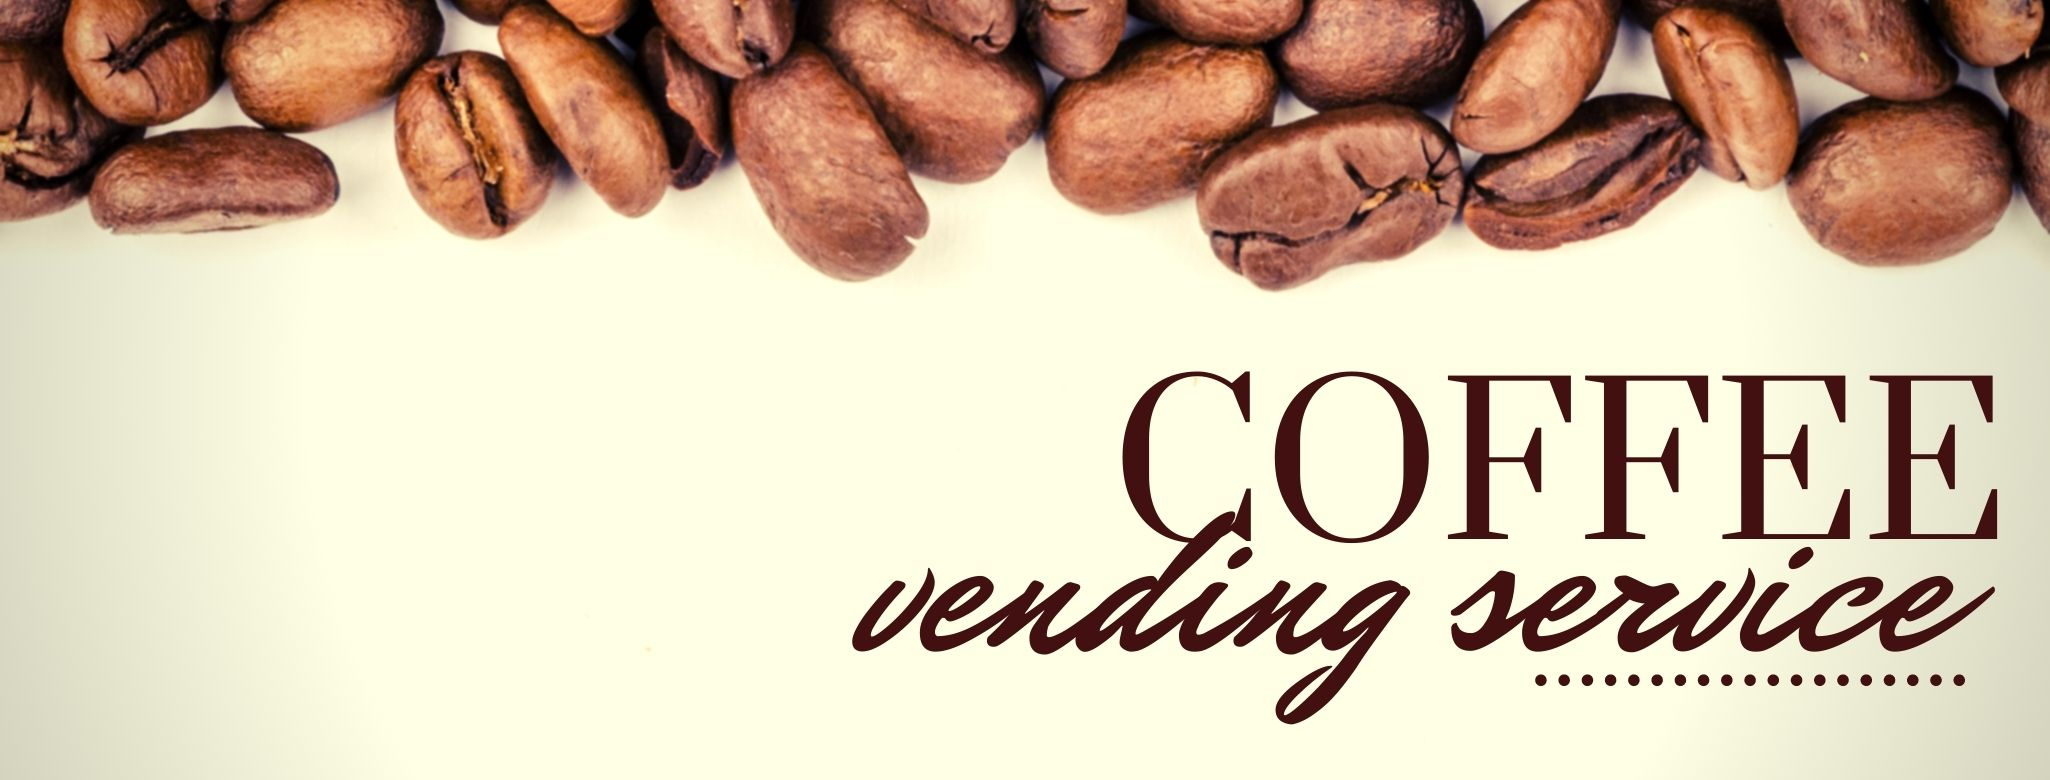 Coffee vending services